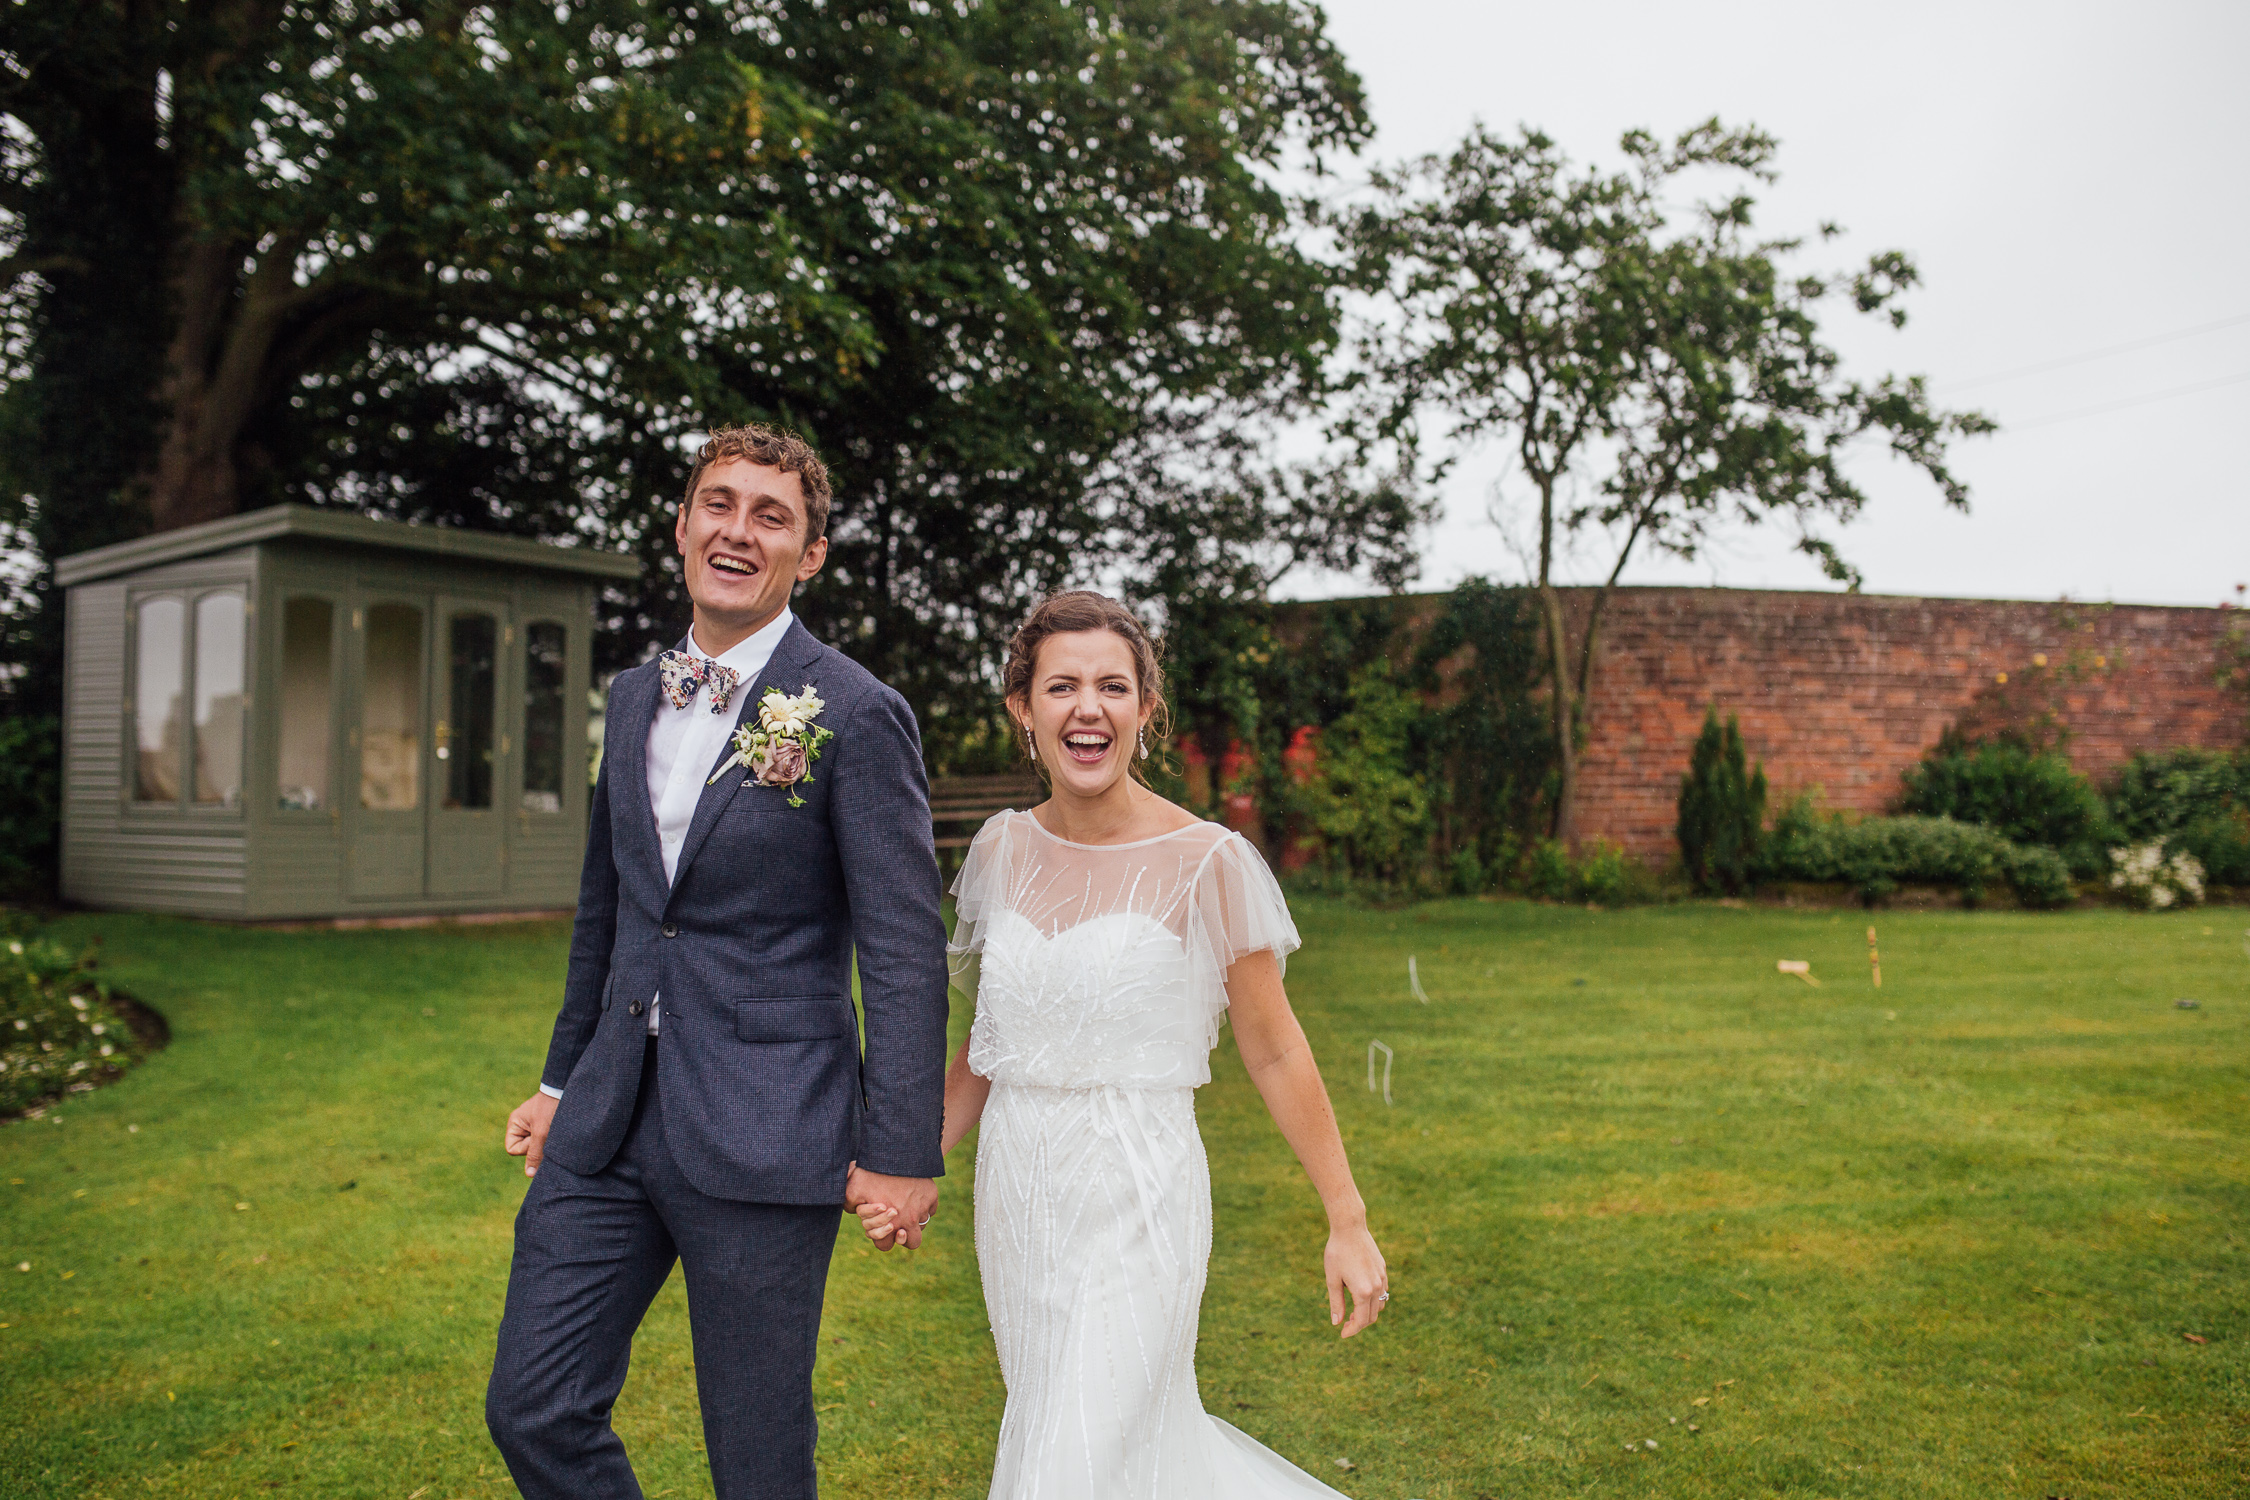 SHREWSBURY_WEDDING_PHOTOGRAPHER-70.jpg